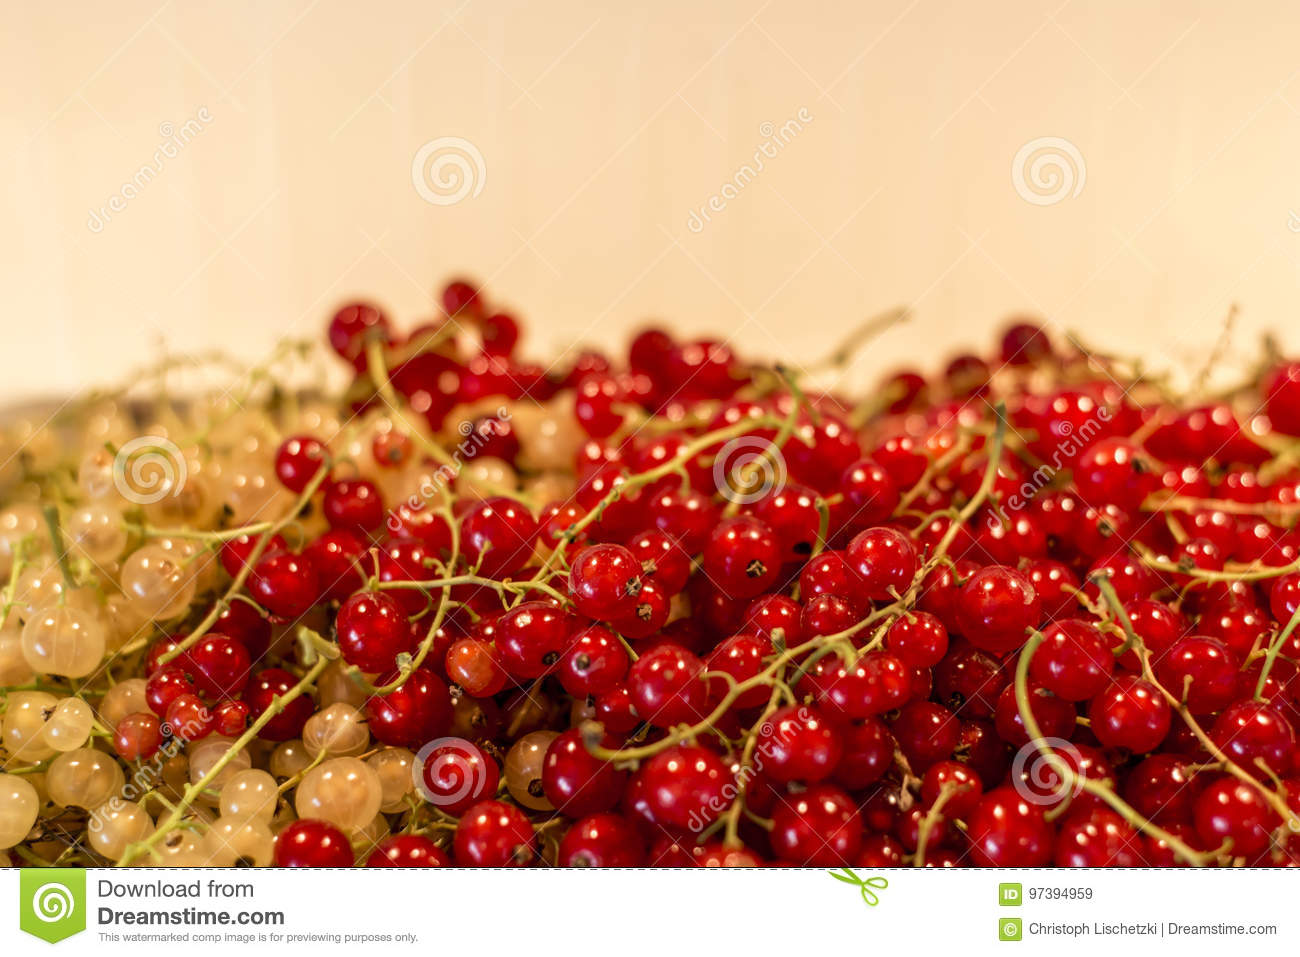 natural background berries red white currant fruit bio organic